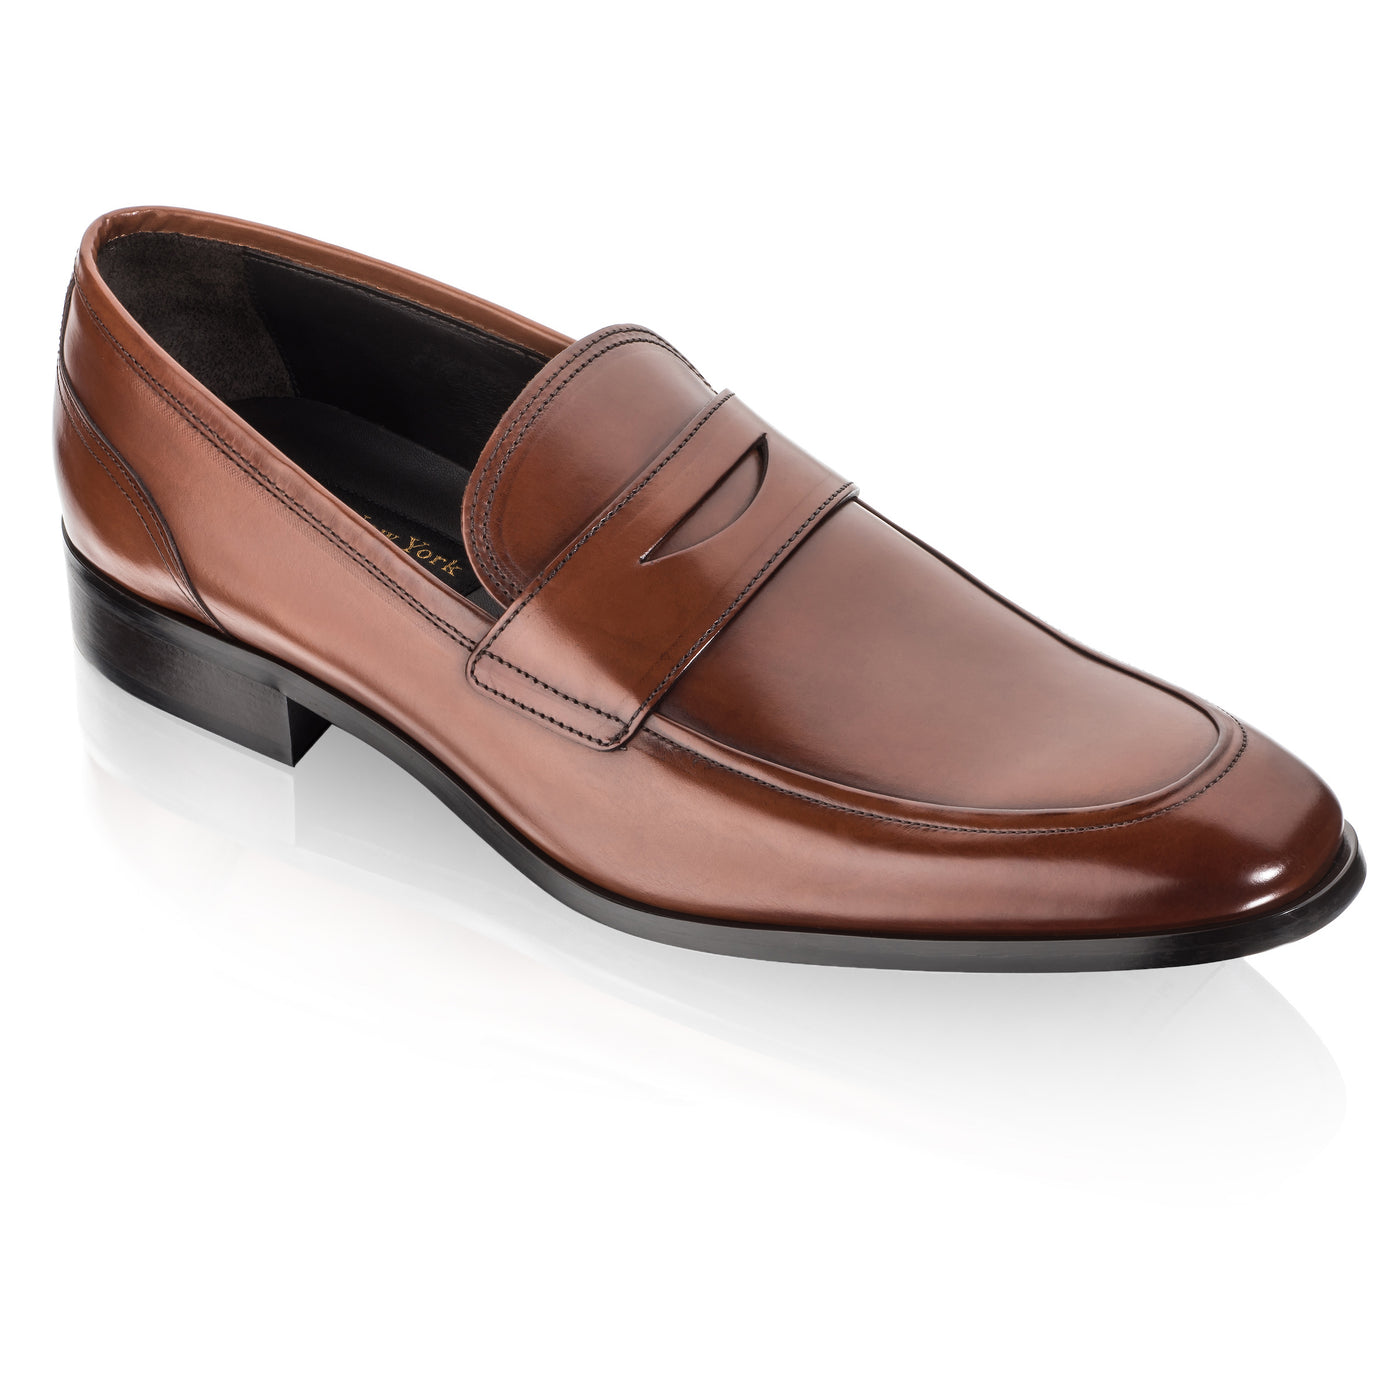 To Boot New York D Island Shoes Slip On Mocasine Casual Brown Deane Cognac